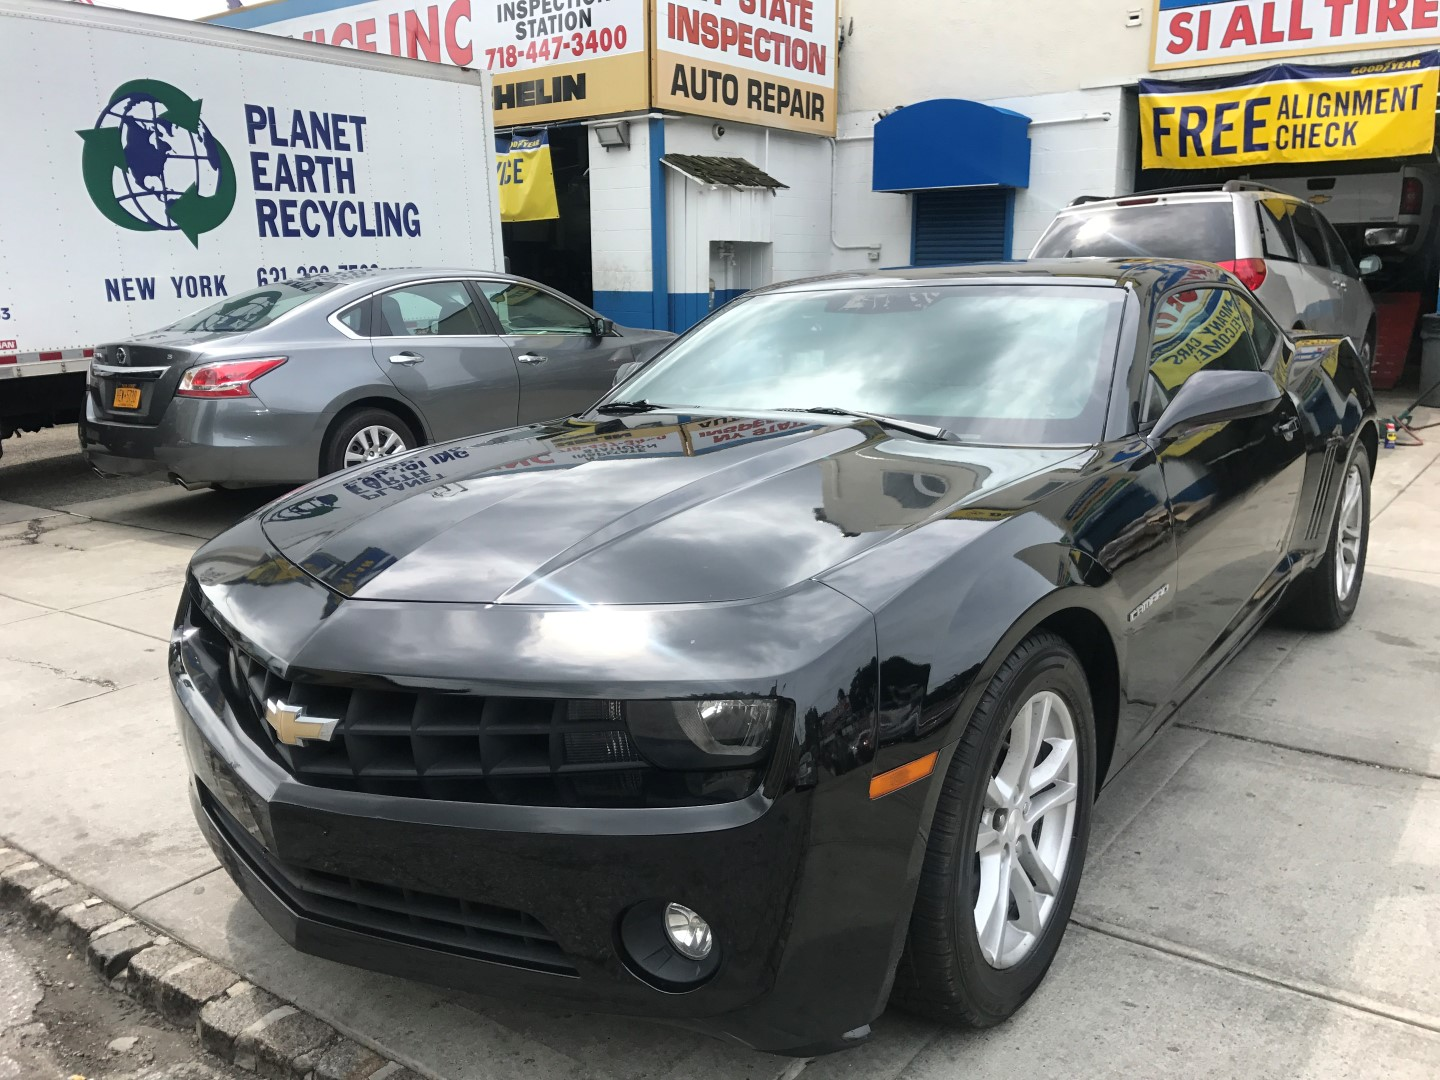 Used Car - 2013 Chevrolet Camaro for Sale in Staten Island, NY